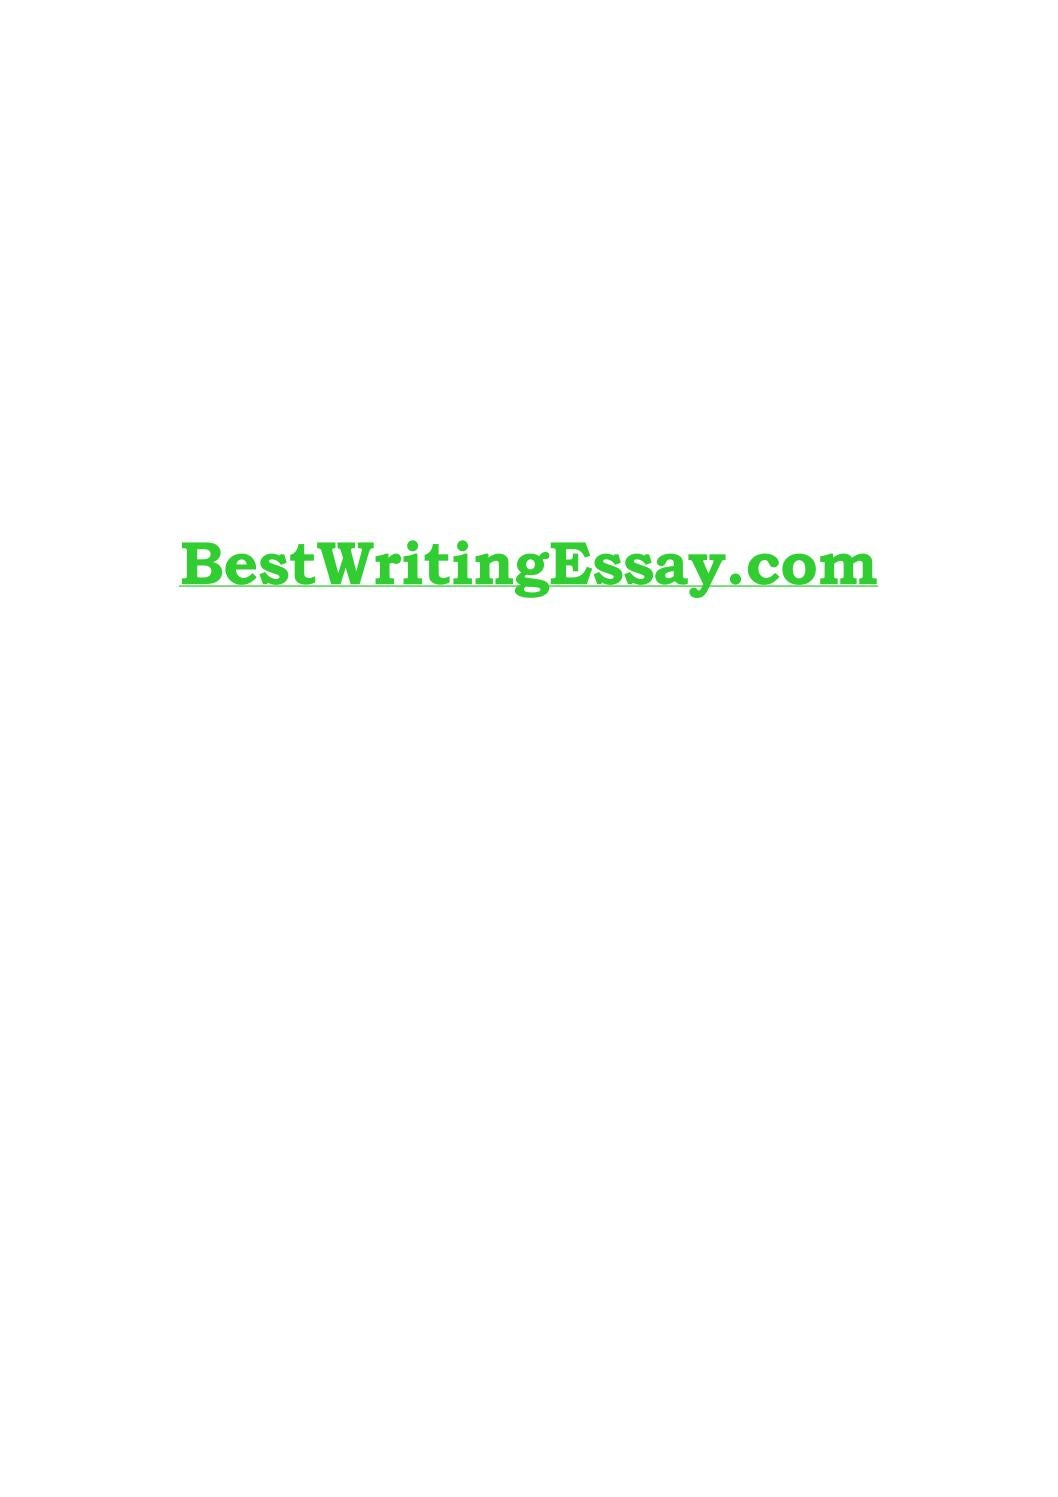 Interesting Essay Topics For High School Students  College Essay Examples also Example Essay Report Essay Writing Topics For High School Students By Codysqpeq  High School Essay Sample